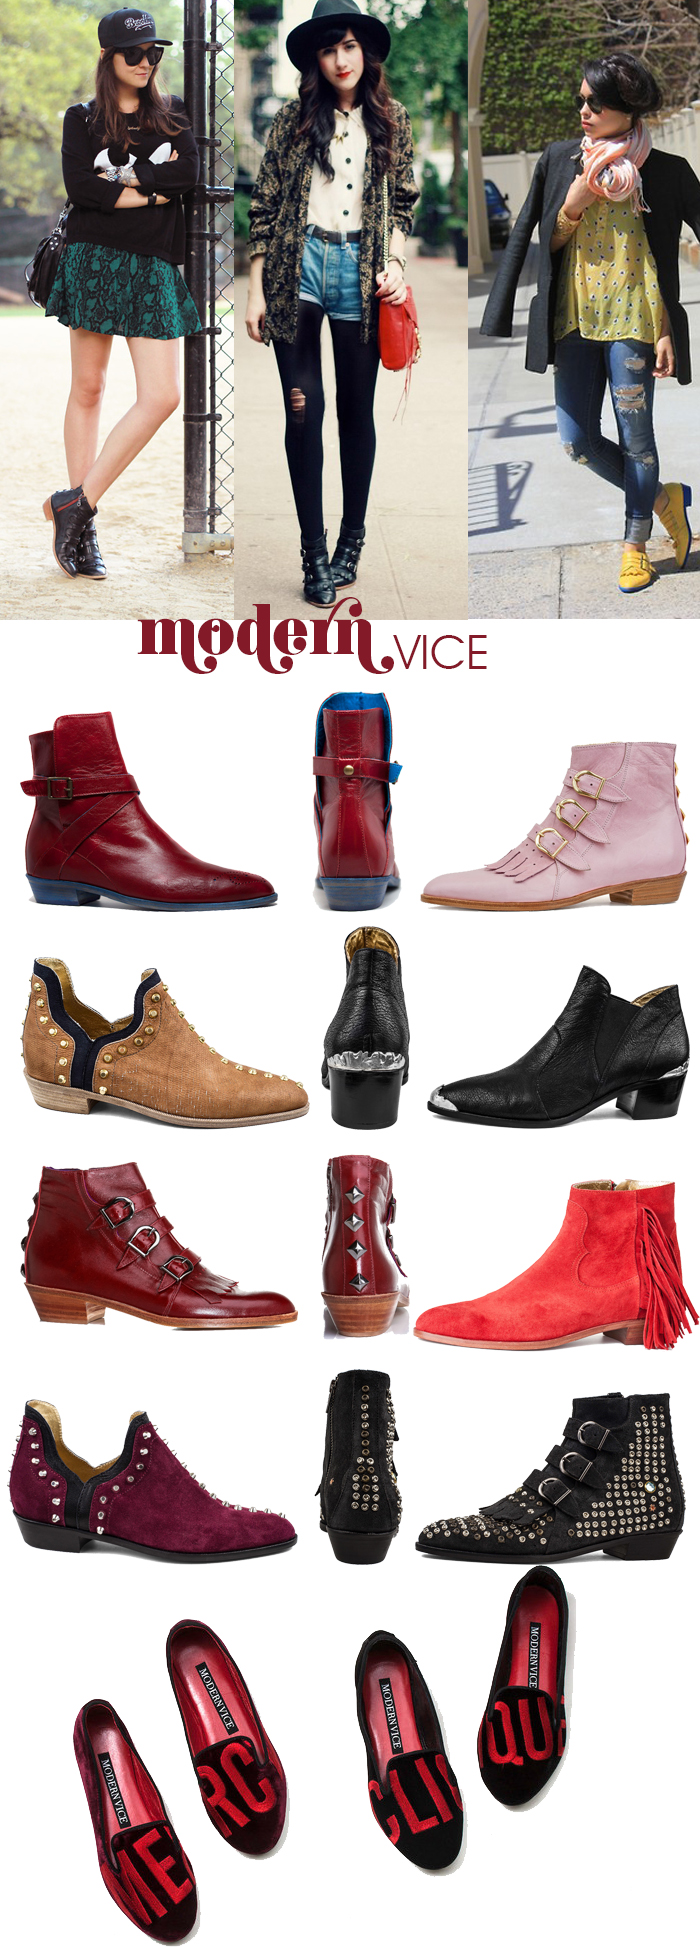 Botas e Slipper Modern Vice Fashion Blog MeninaIT